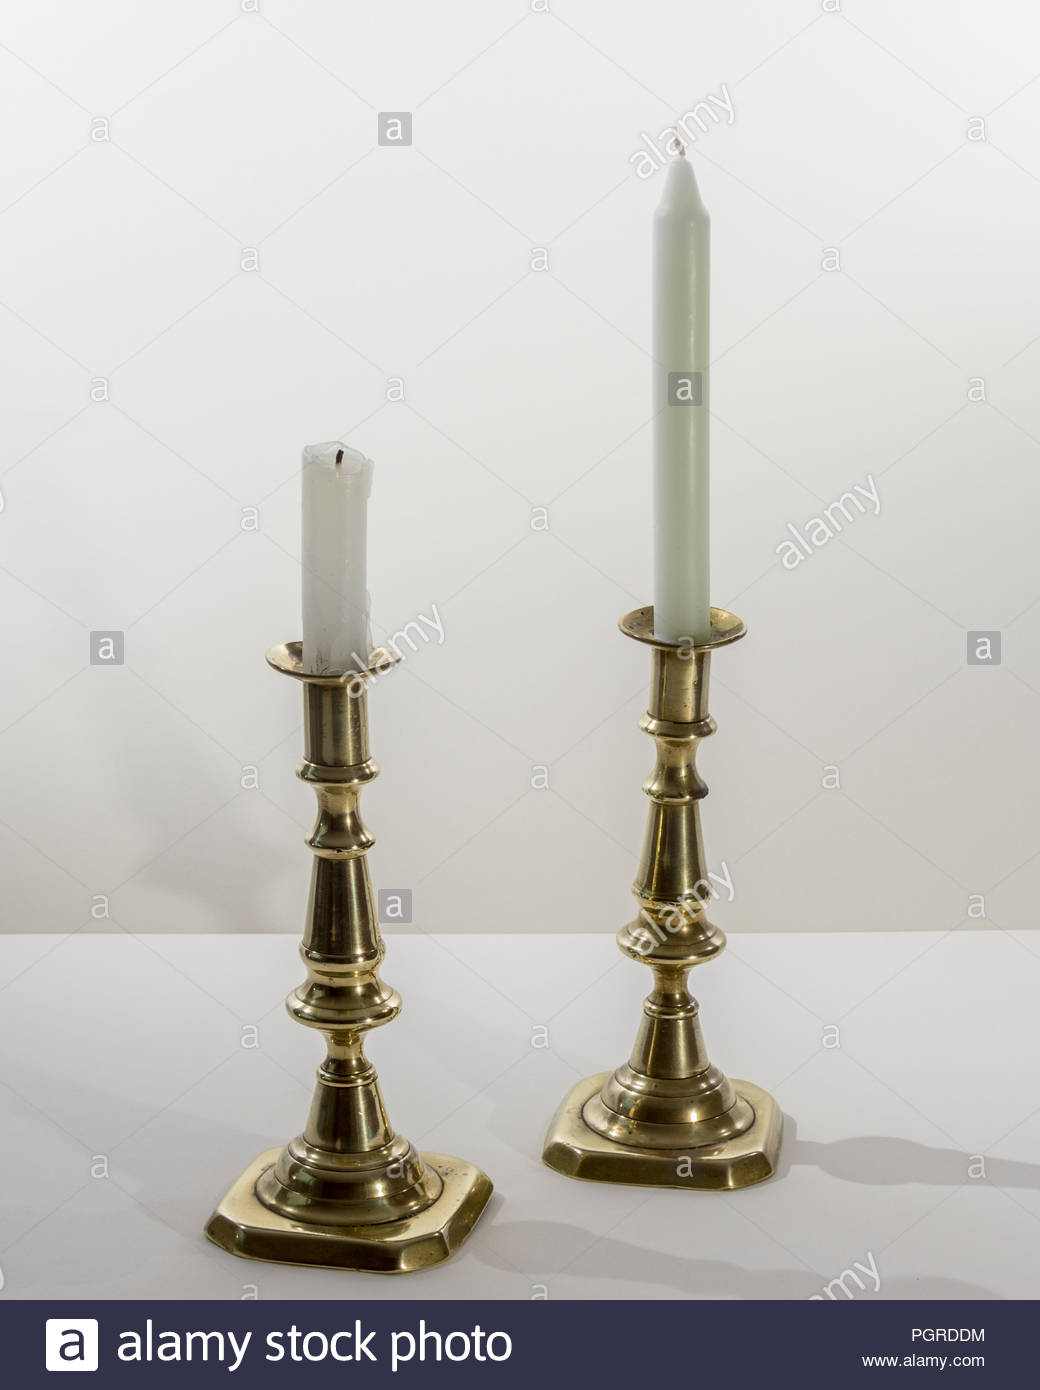 A pair of polished antique brass candlestick, with unlit candles on a white background Stock Photo